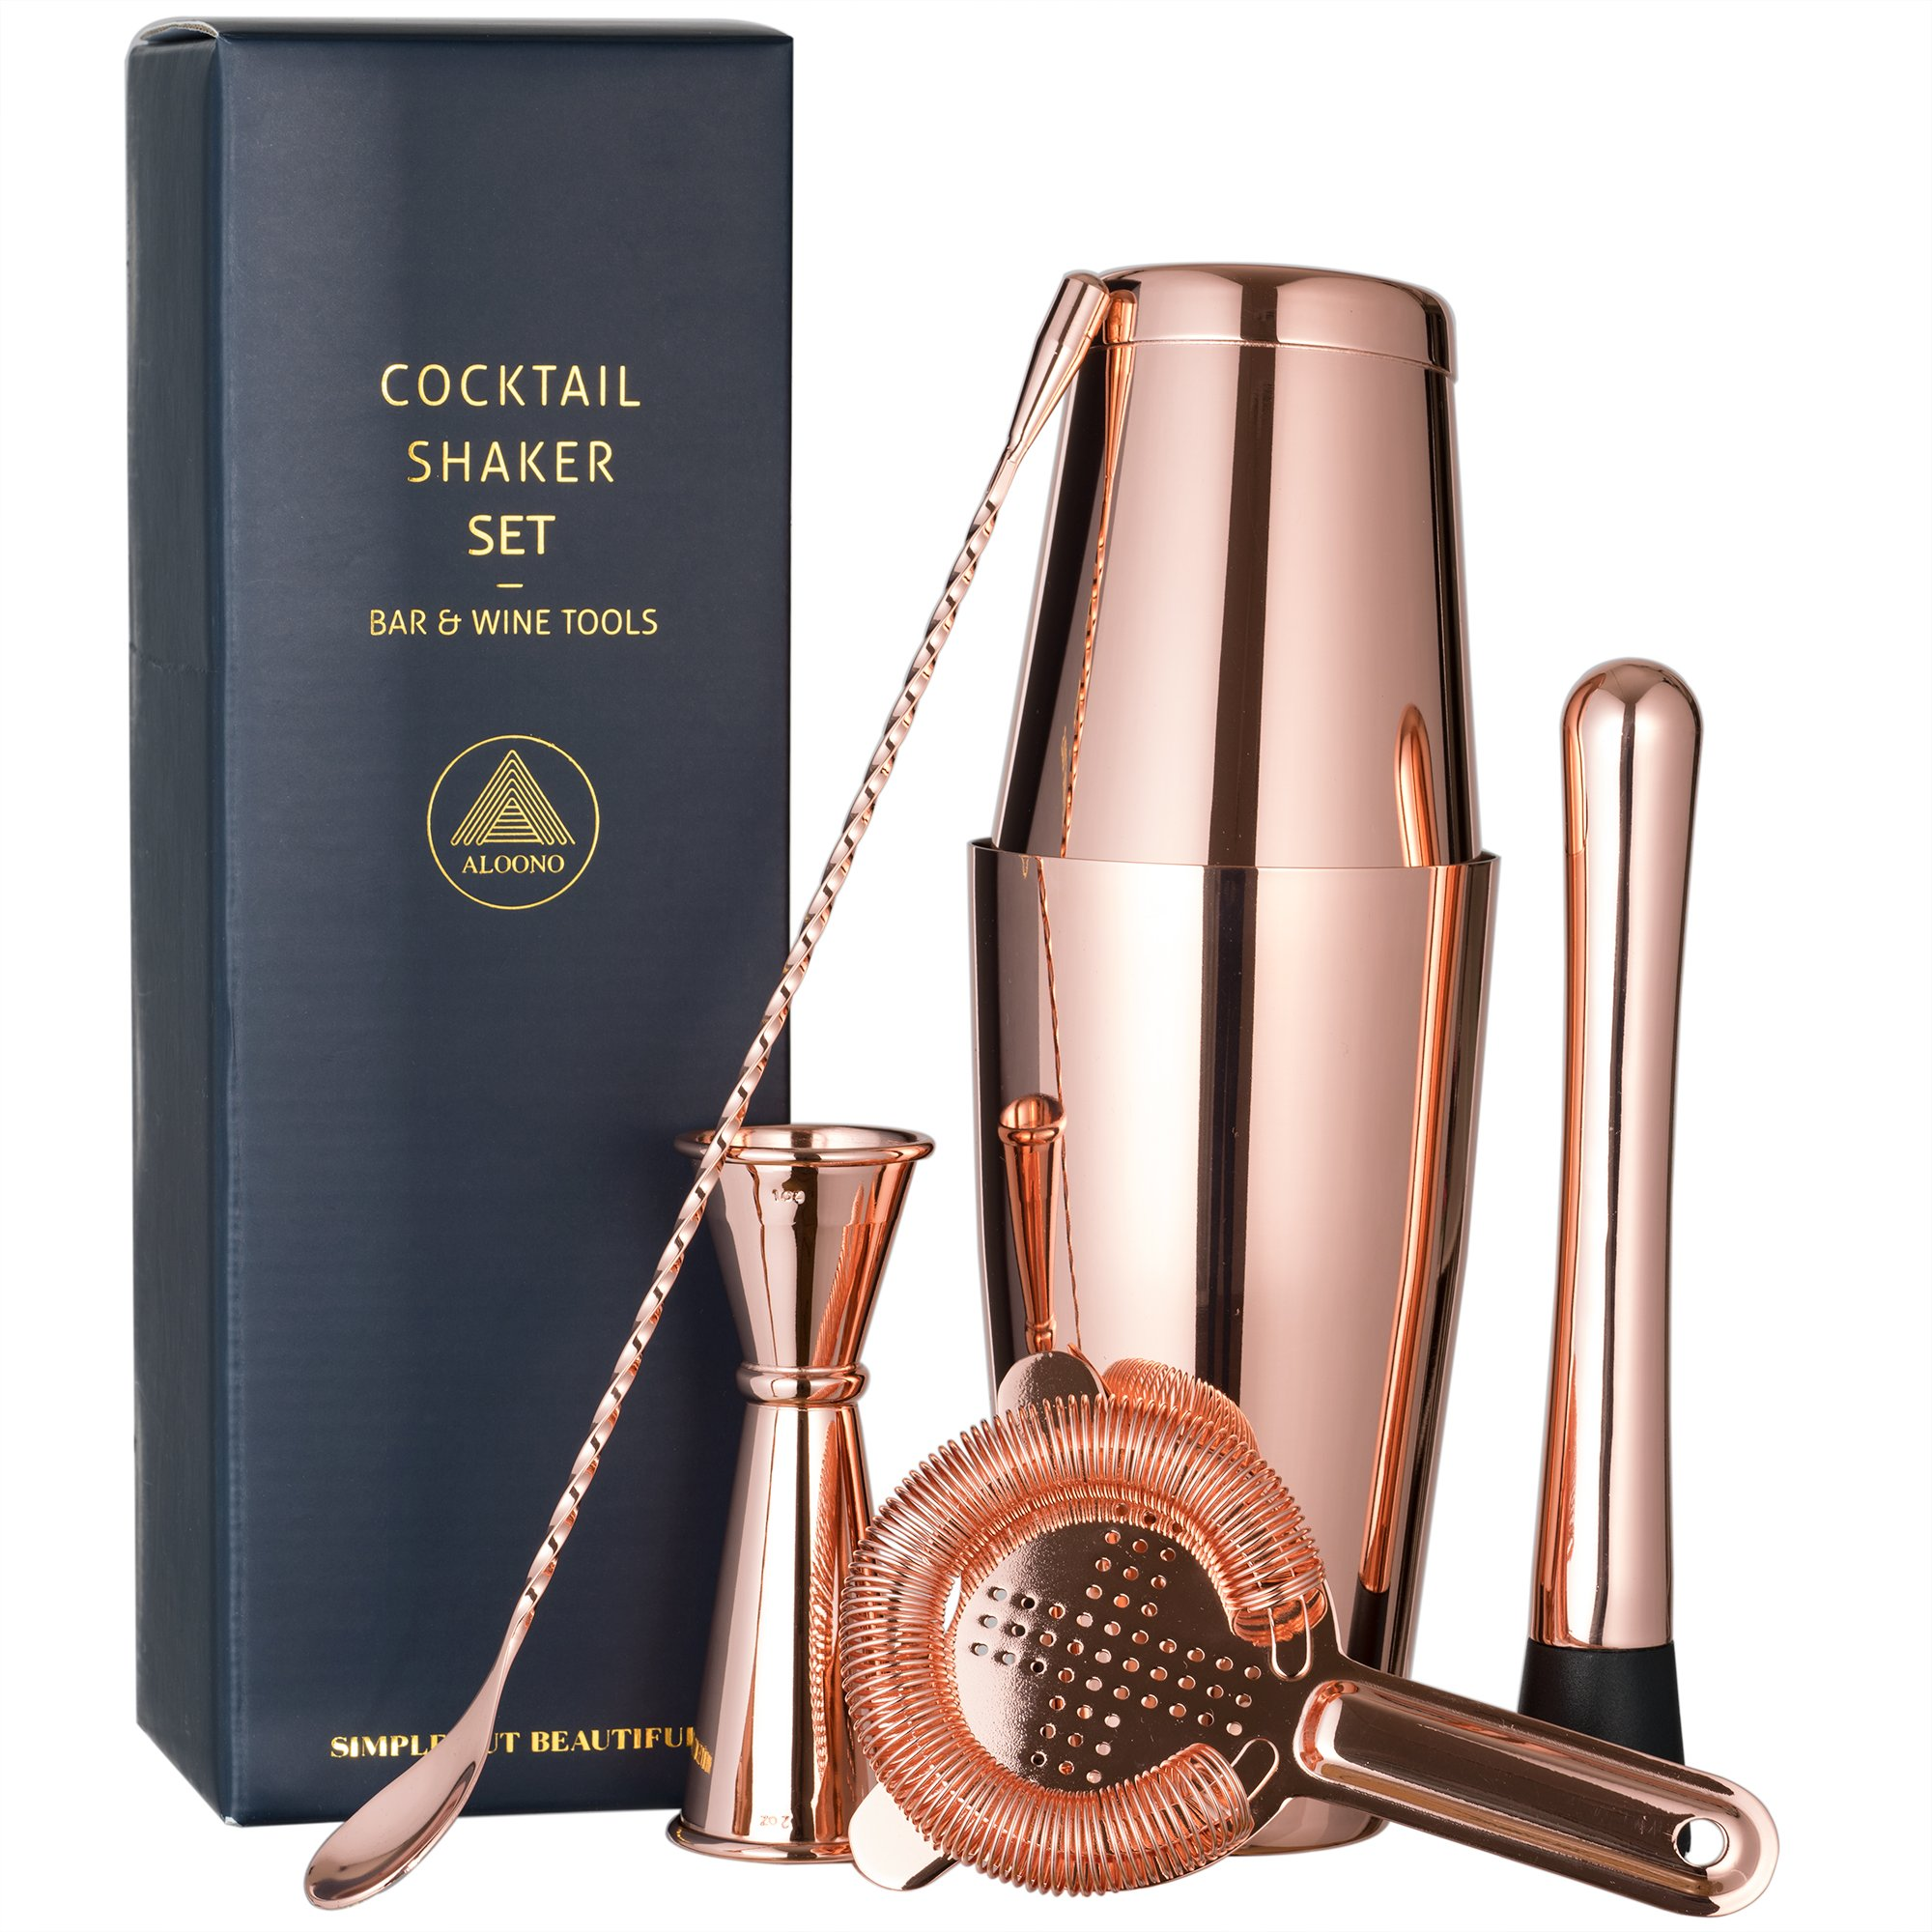 Copper Plated Boston Cocktail Shaker Bar Set: 18oz & 28oz Shaker Tins, Hawthorne Cocktail Strainer, Double Jigger (0.5oz - 2oz), 12'' Mixing Spoon, 7'' Drink Muddler w/Recipes and Greeting Card